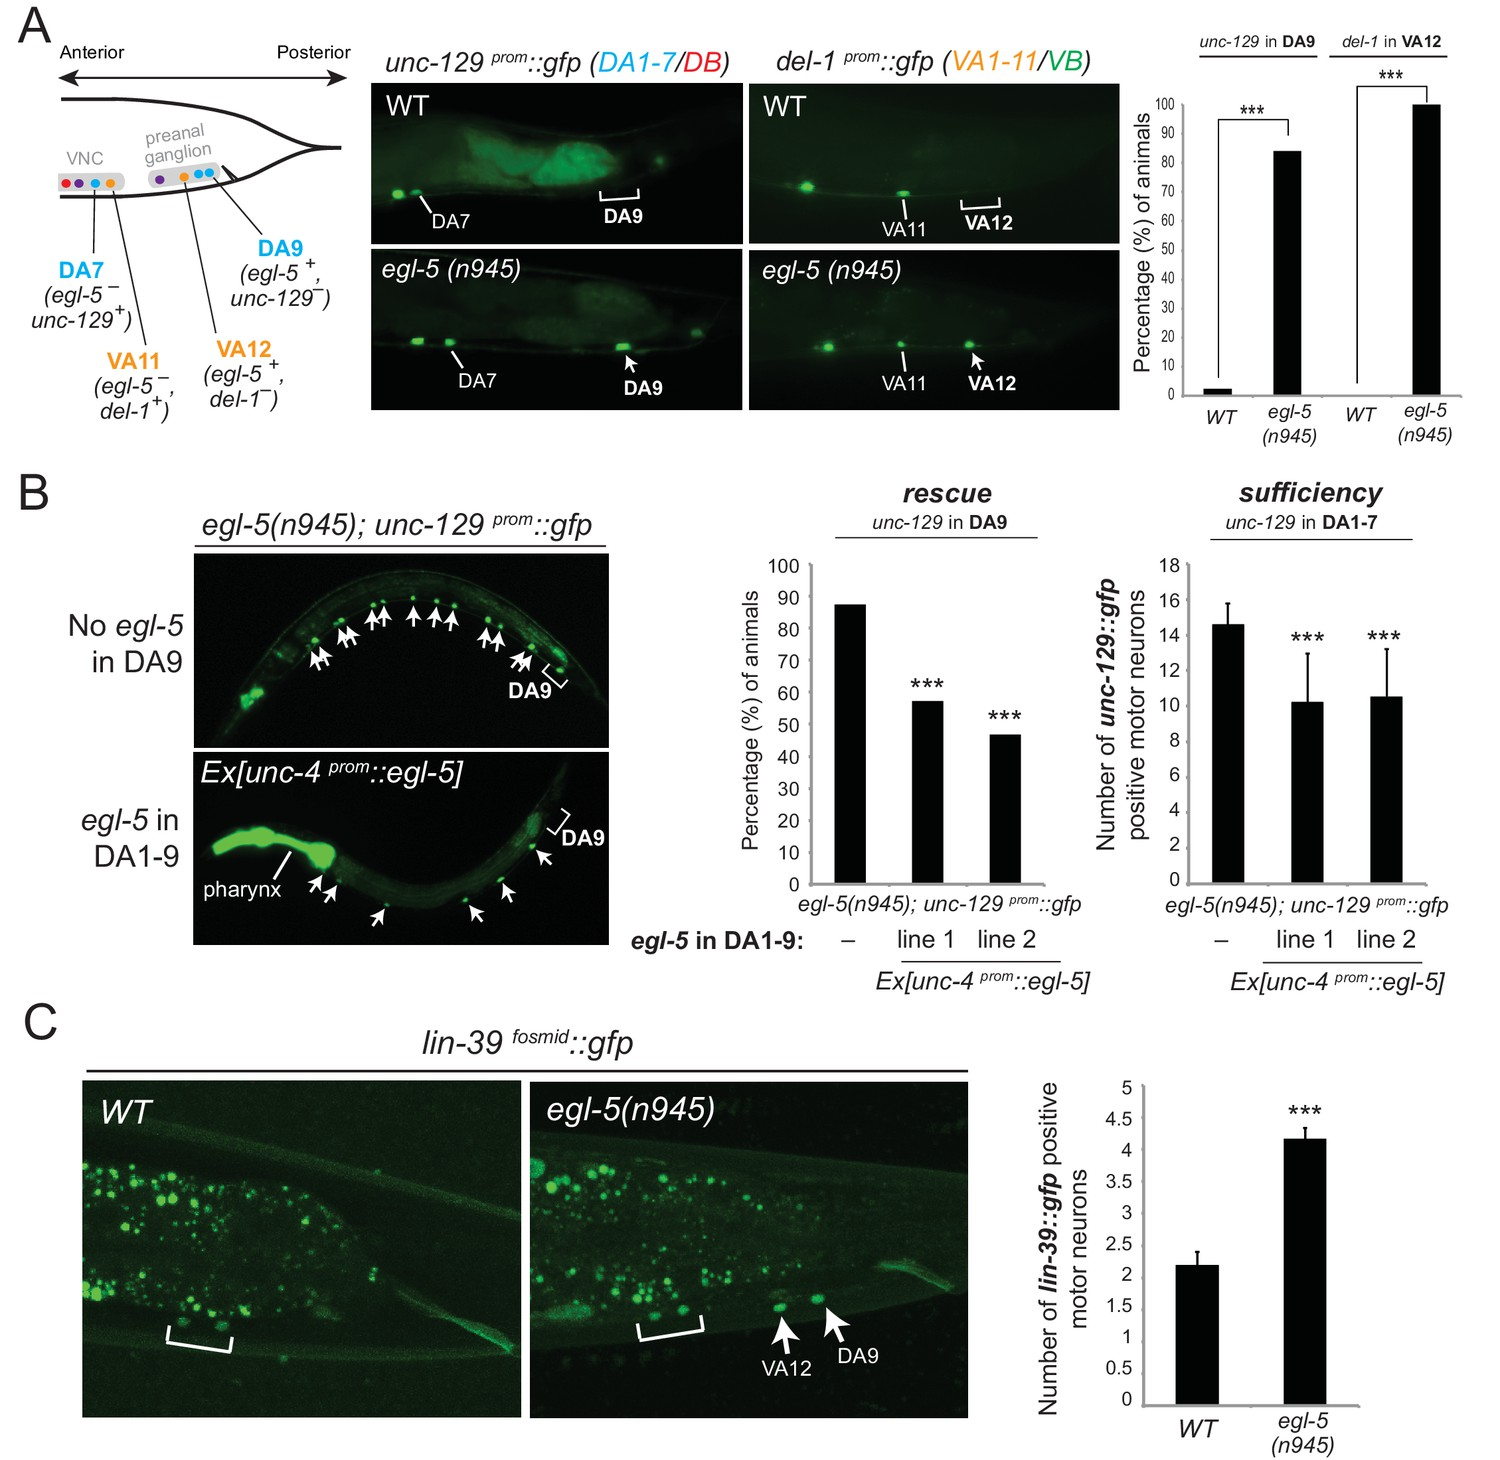 An Intersectional Gene Regulatory Strategy Defines Subclass Cambridge 302 Wiring Diagram Evidence For Homeotic Activities Of Egl 5 Abd B Hox9 Hox13 In Motor Neuron Subclasses A Schematic